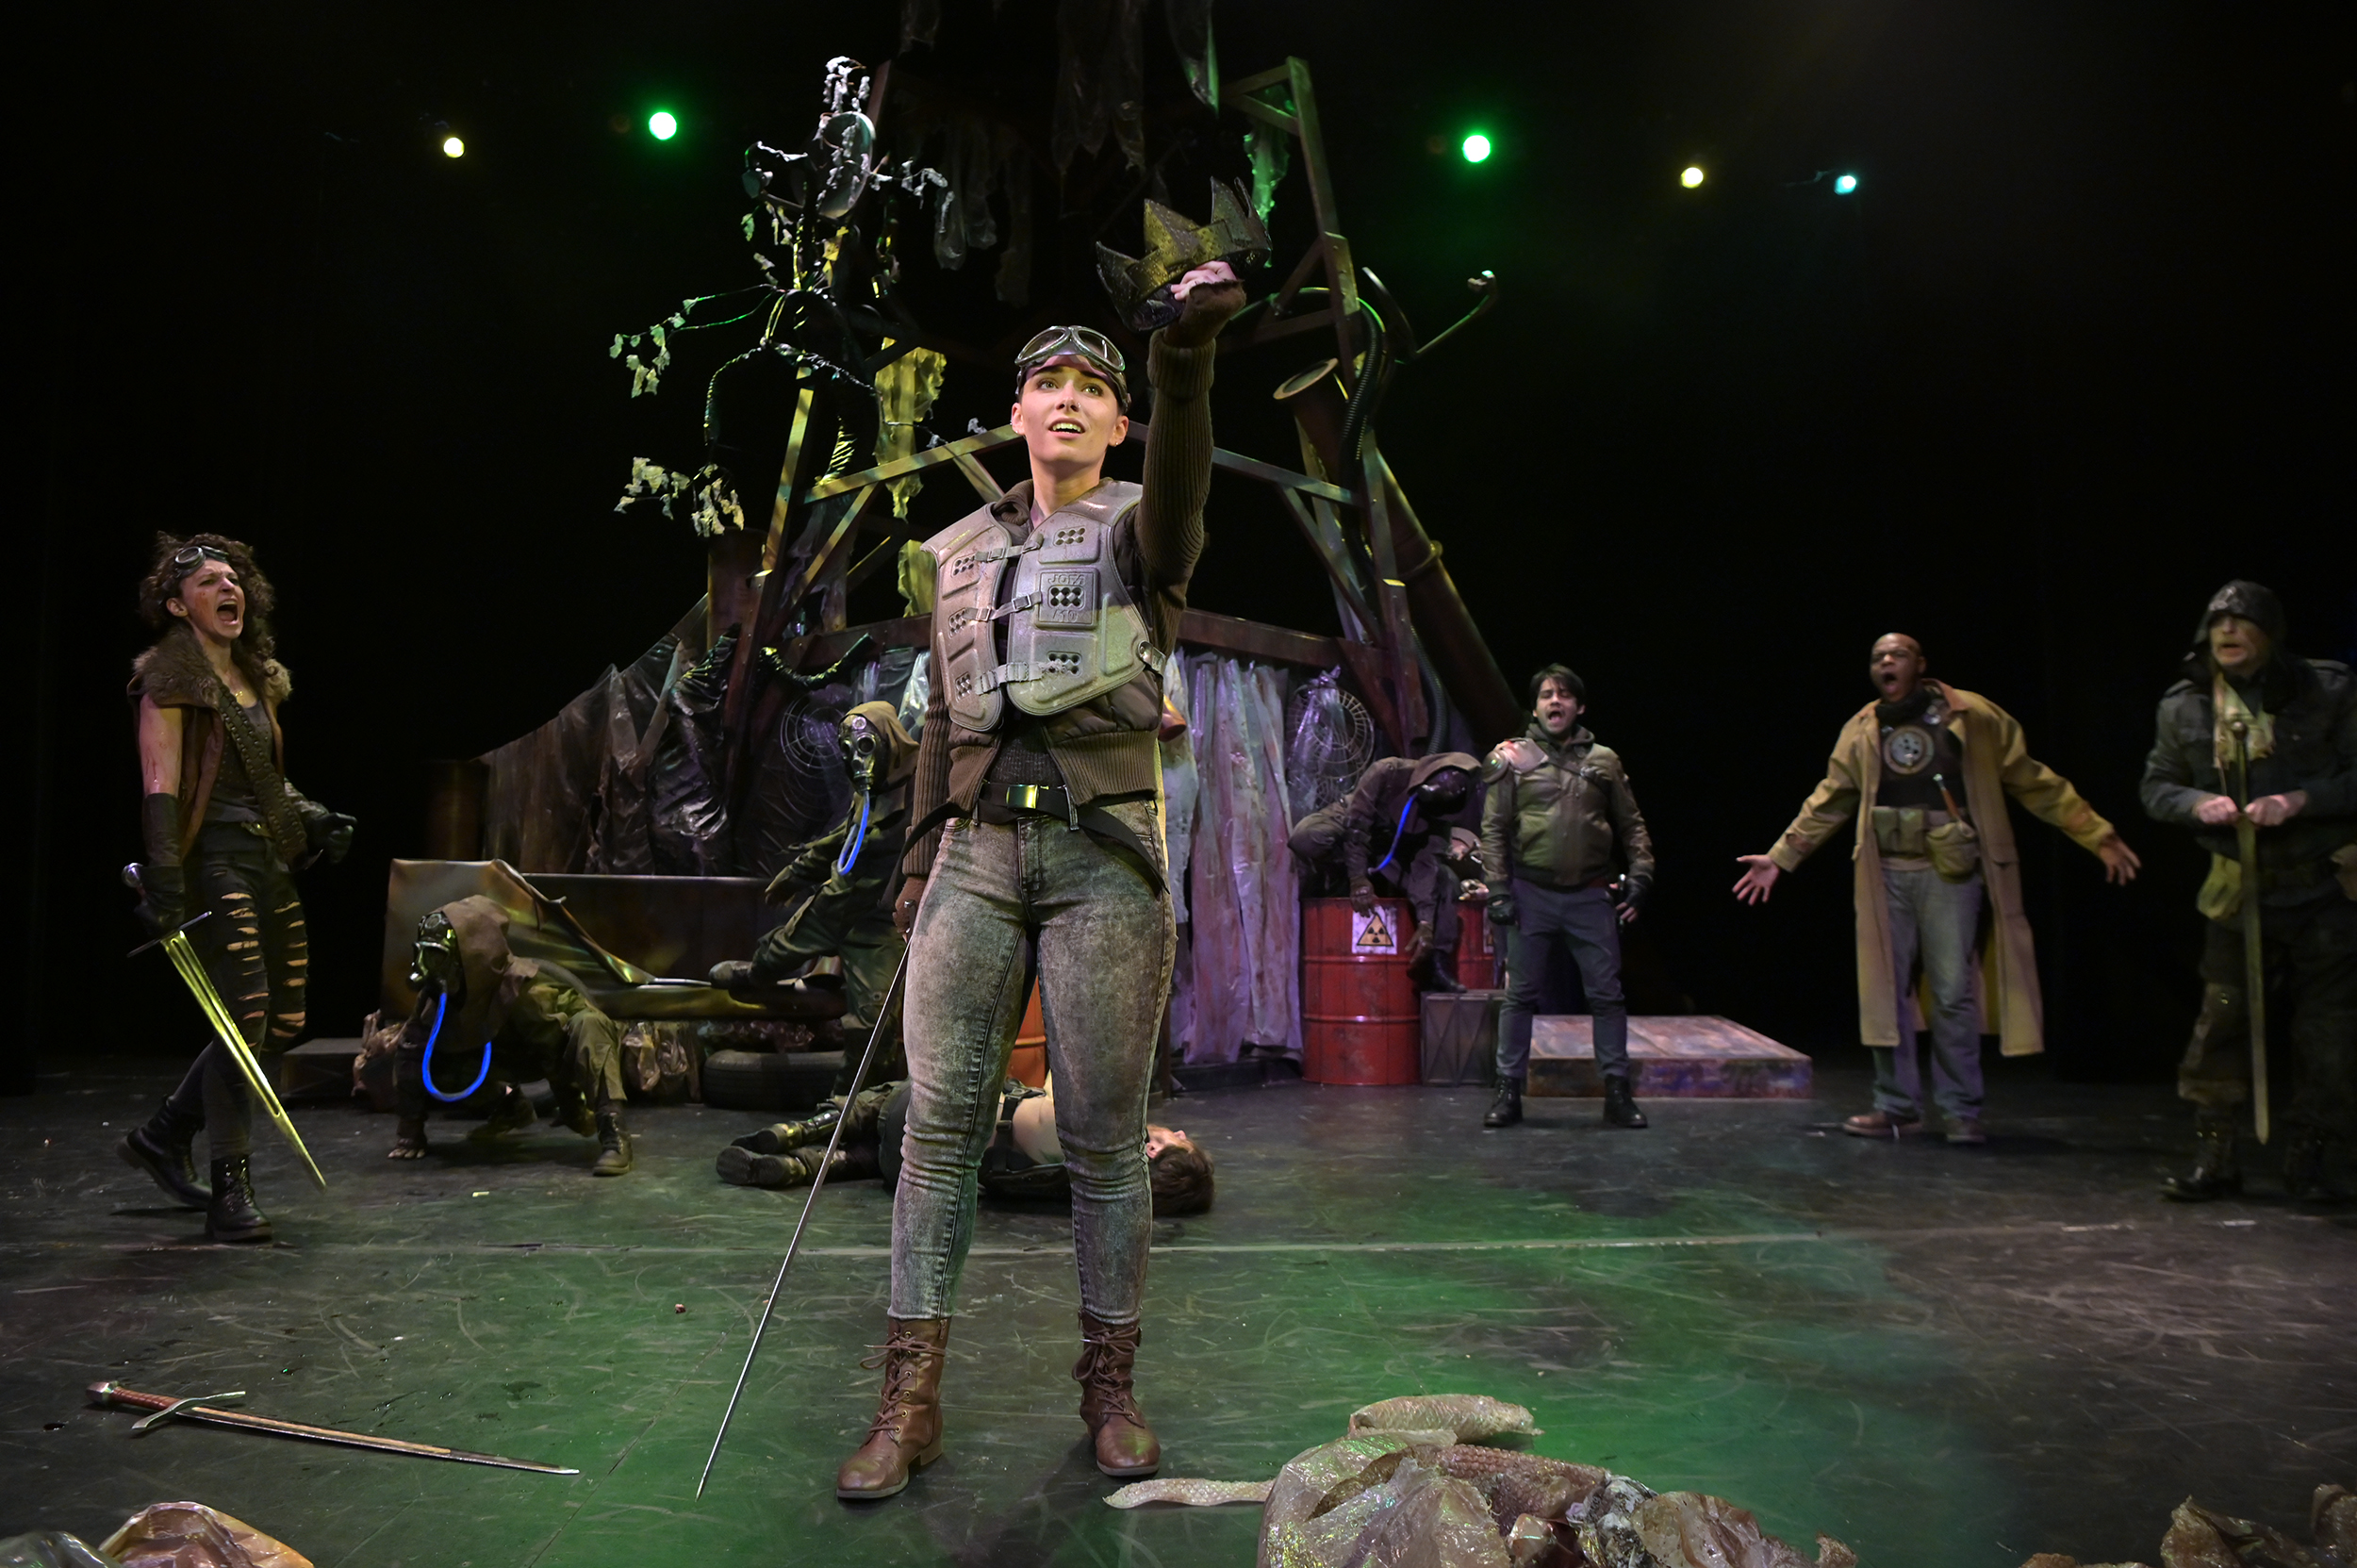 Performance of Macbeth, with actor raising fist to the sky.